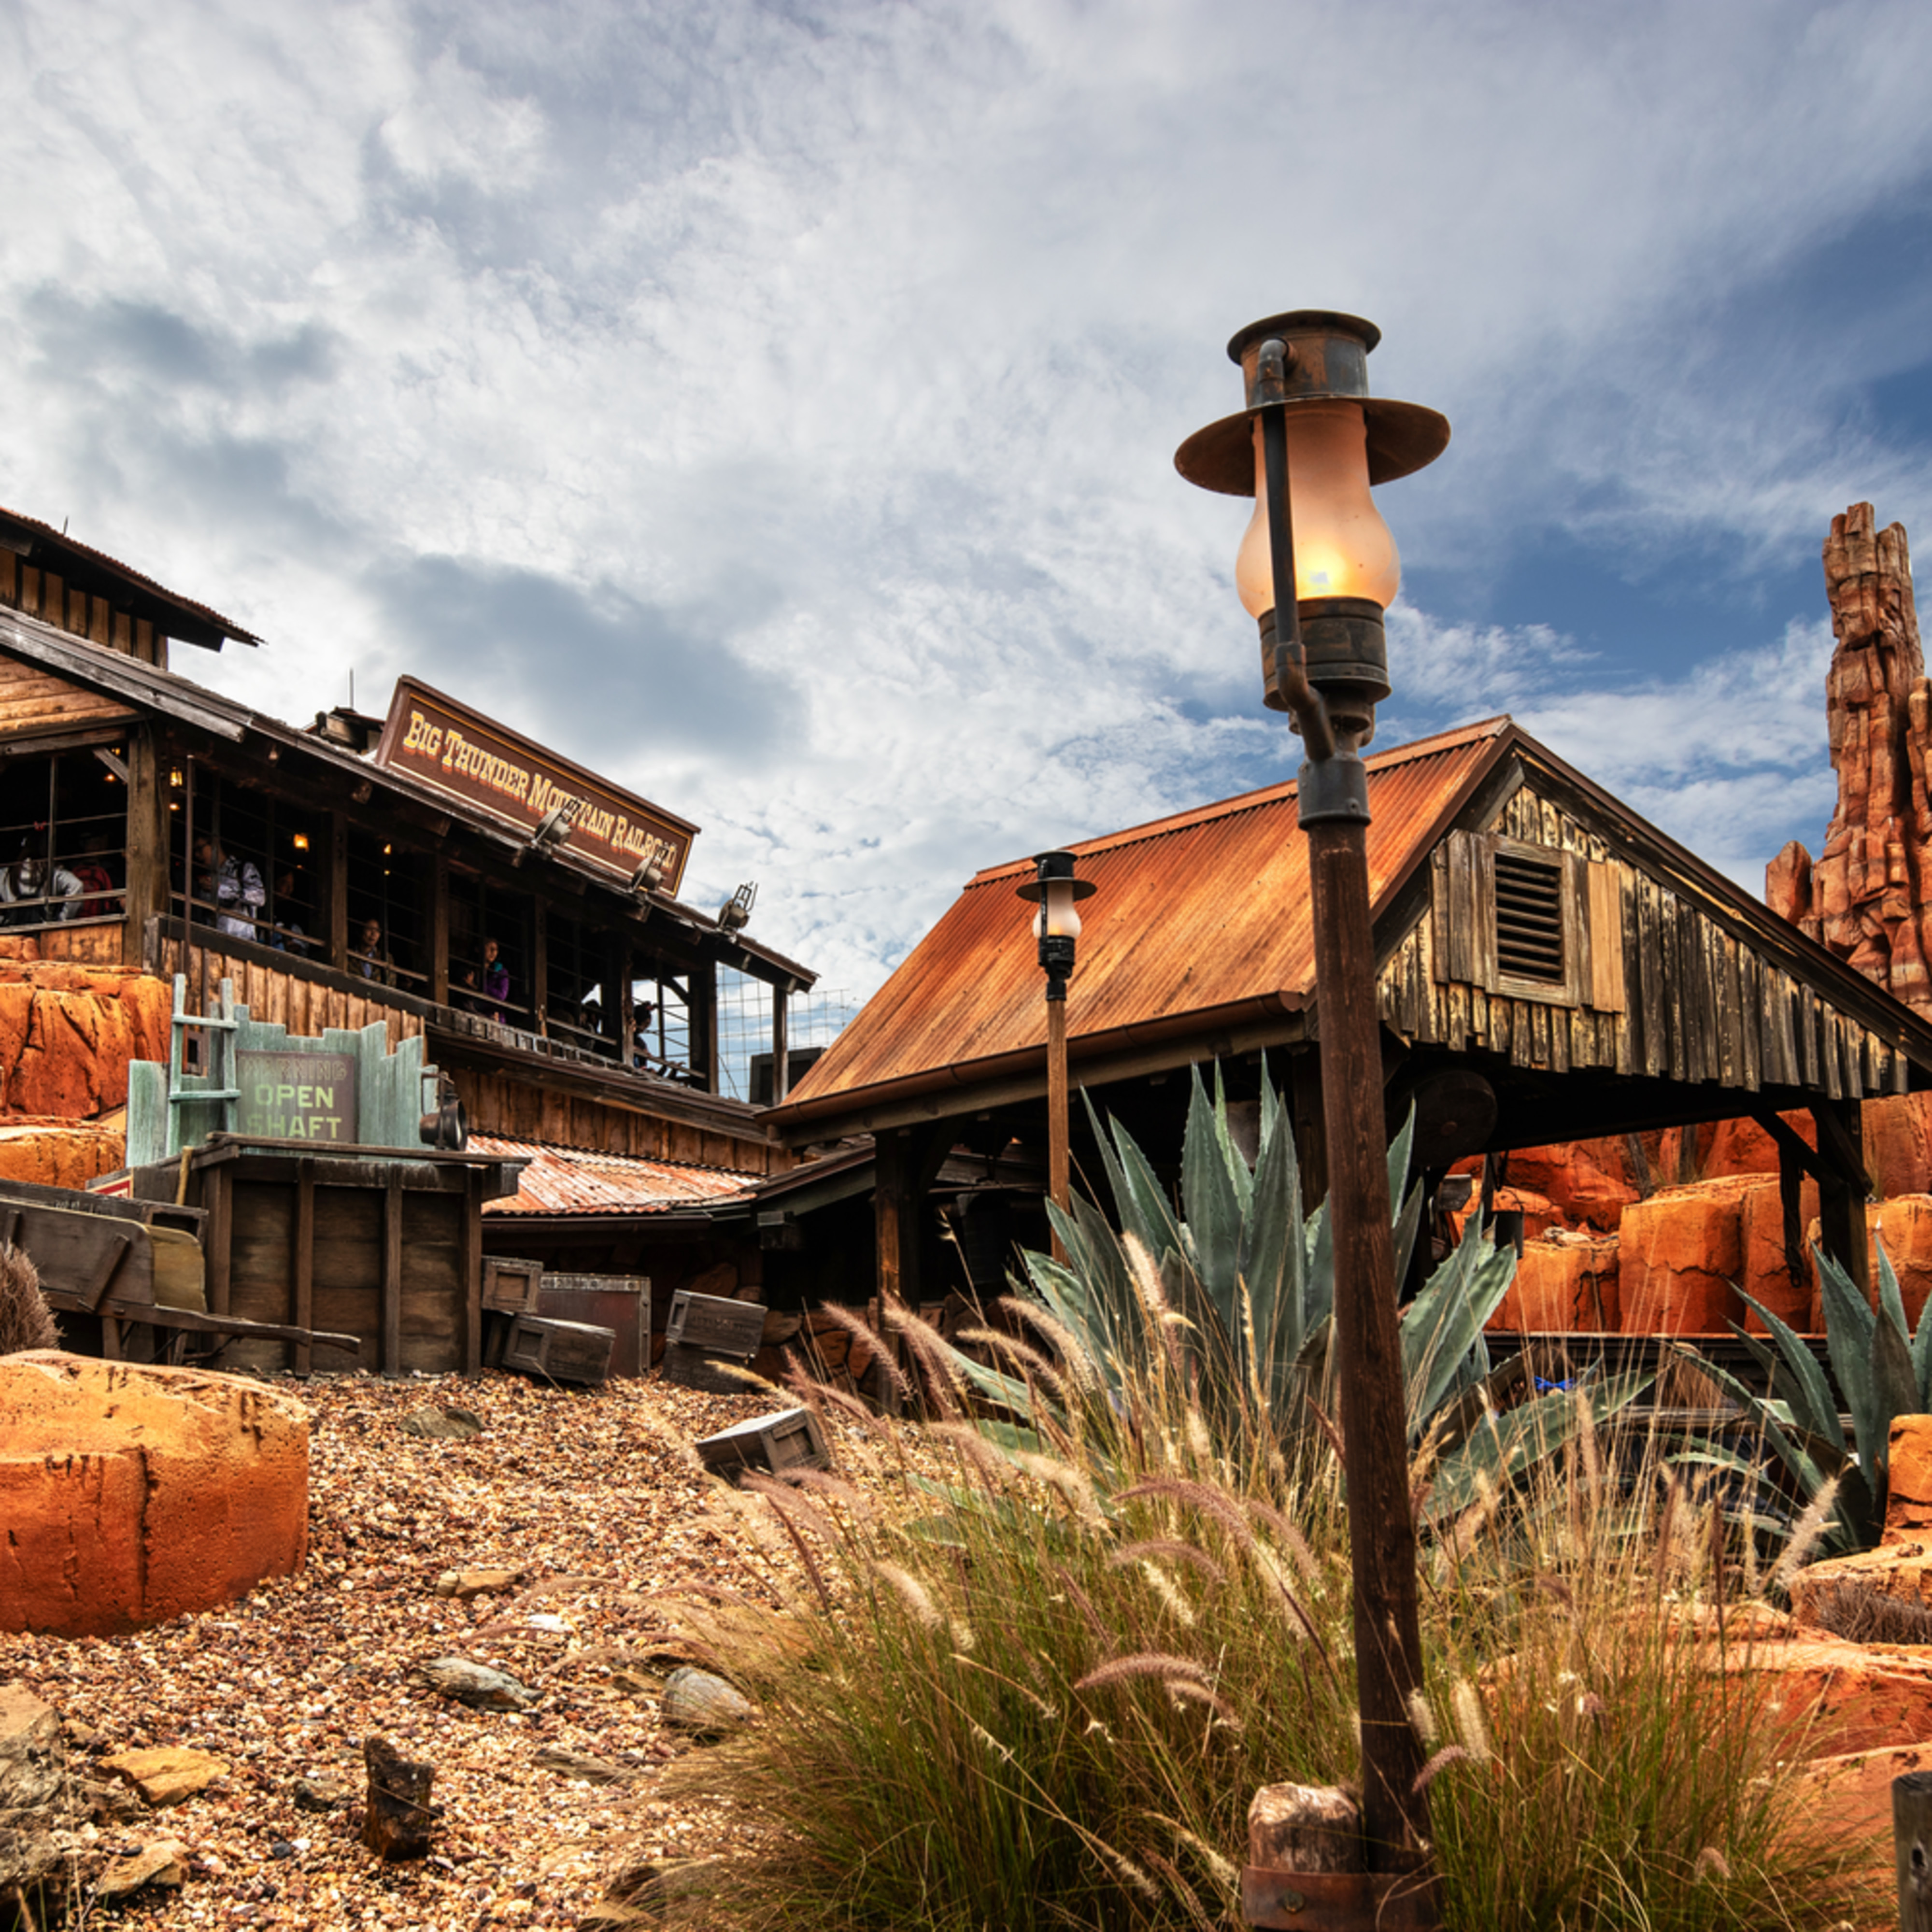 The wilderness of big thunder mountain qsrsvy